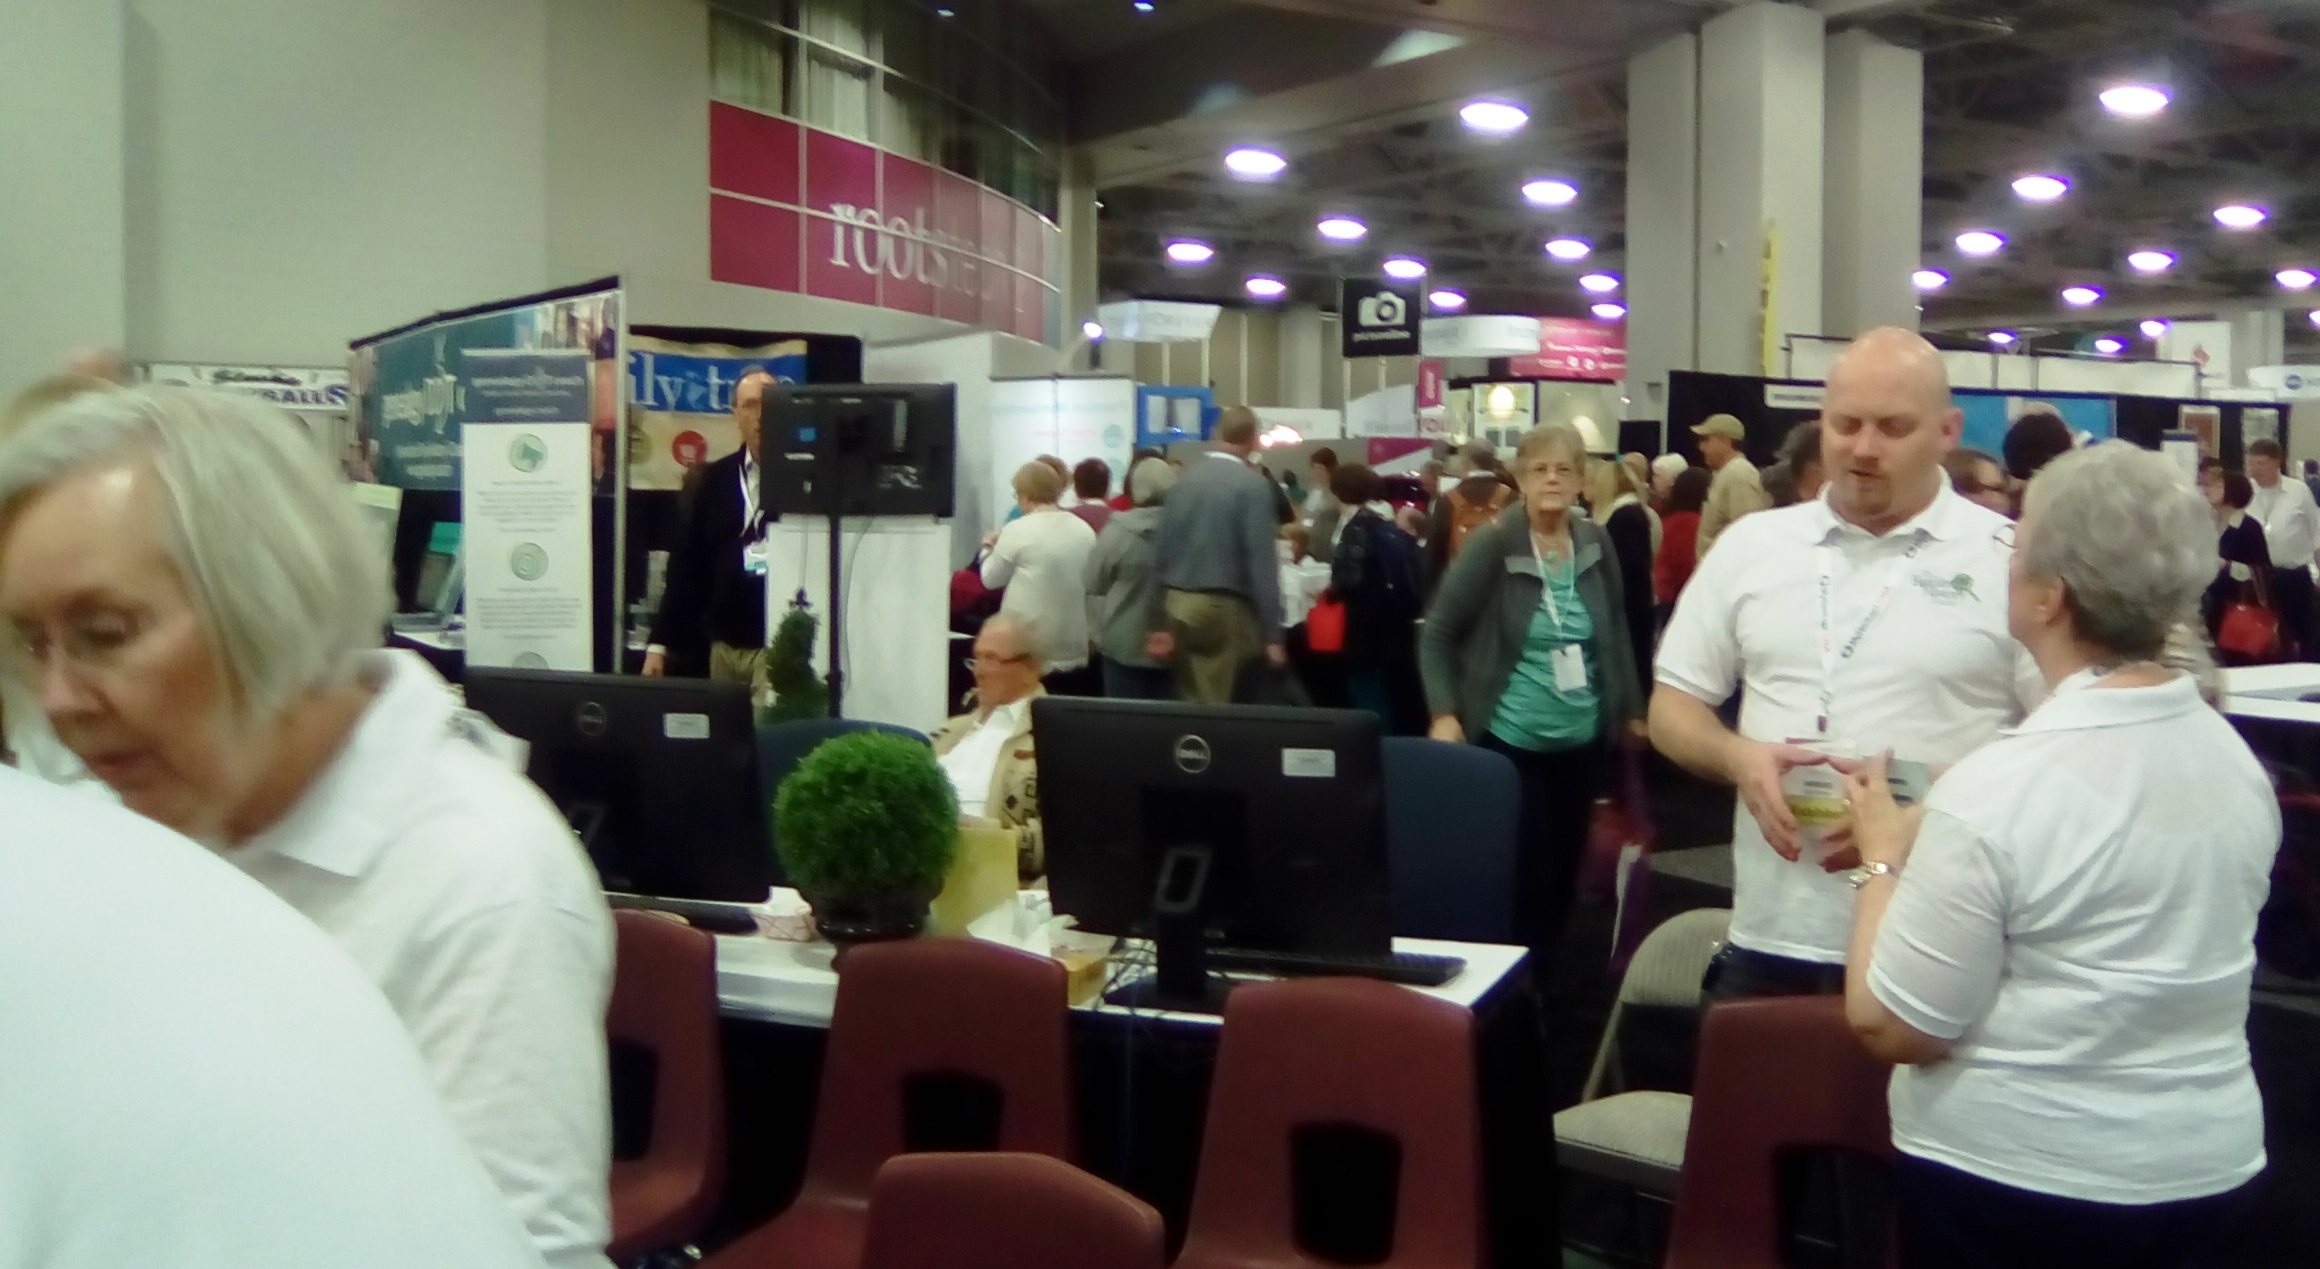 crowded exhibit hall